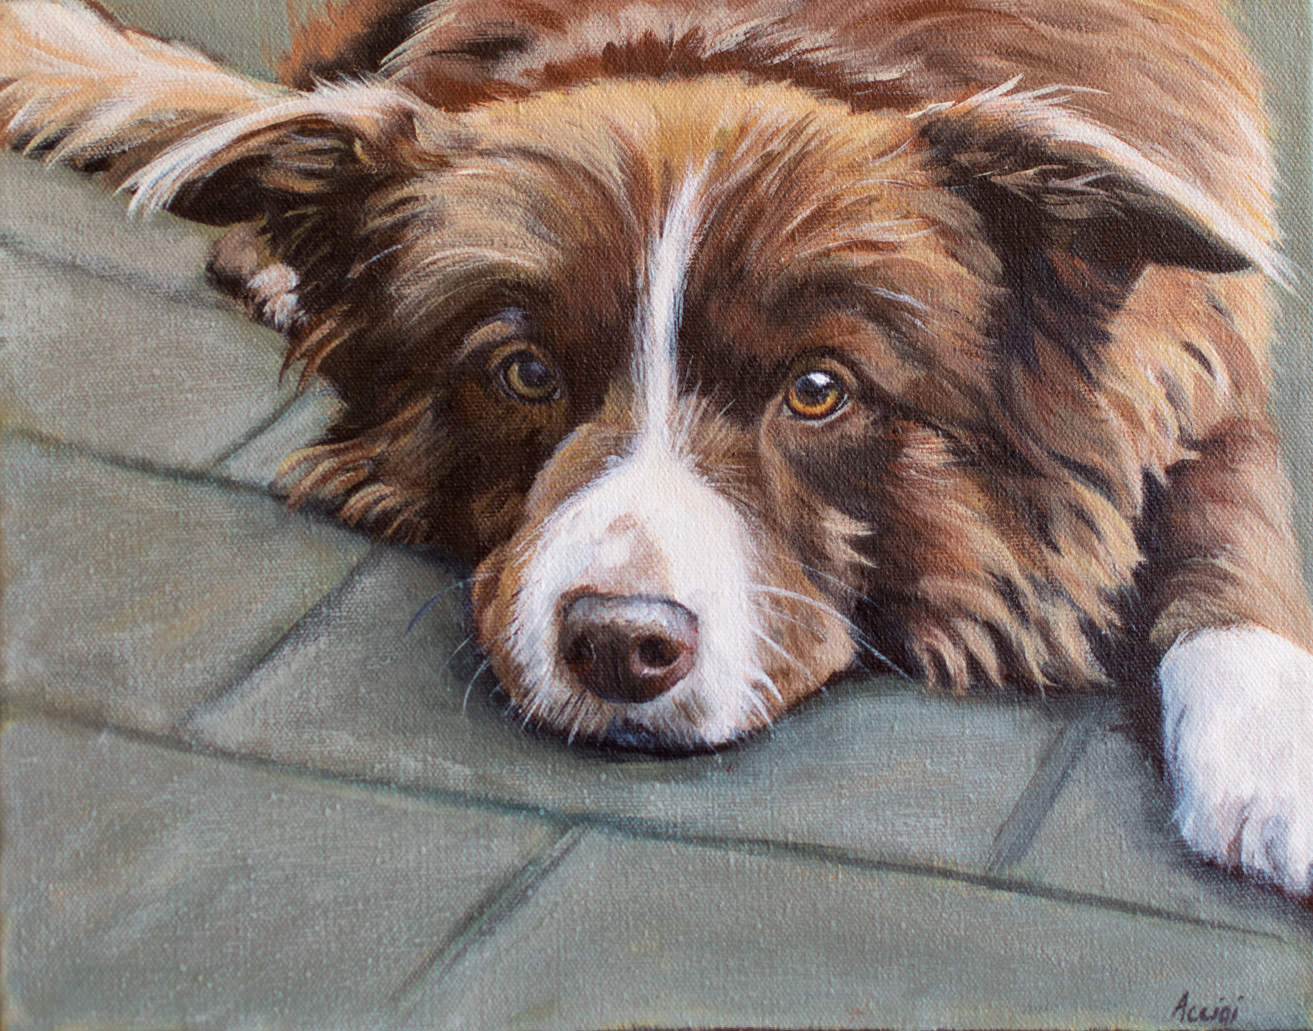 """Just Chilin""border-collie by Lisa Acciai of LAcStudio"